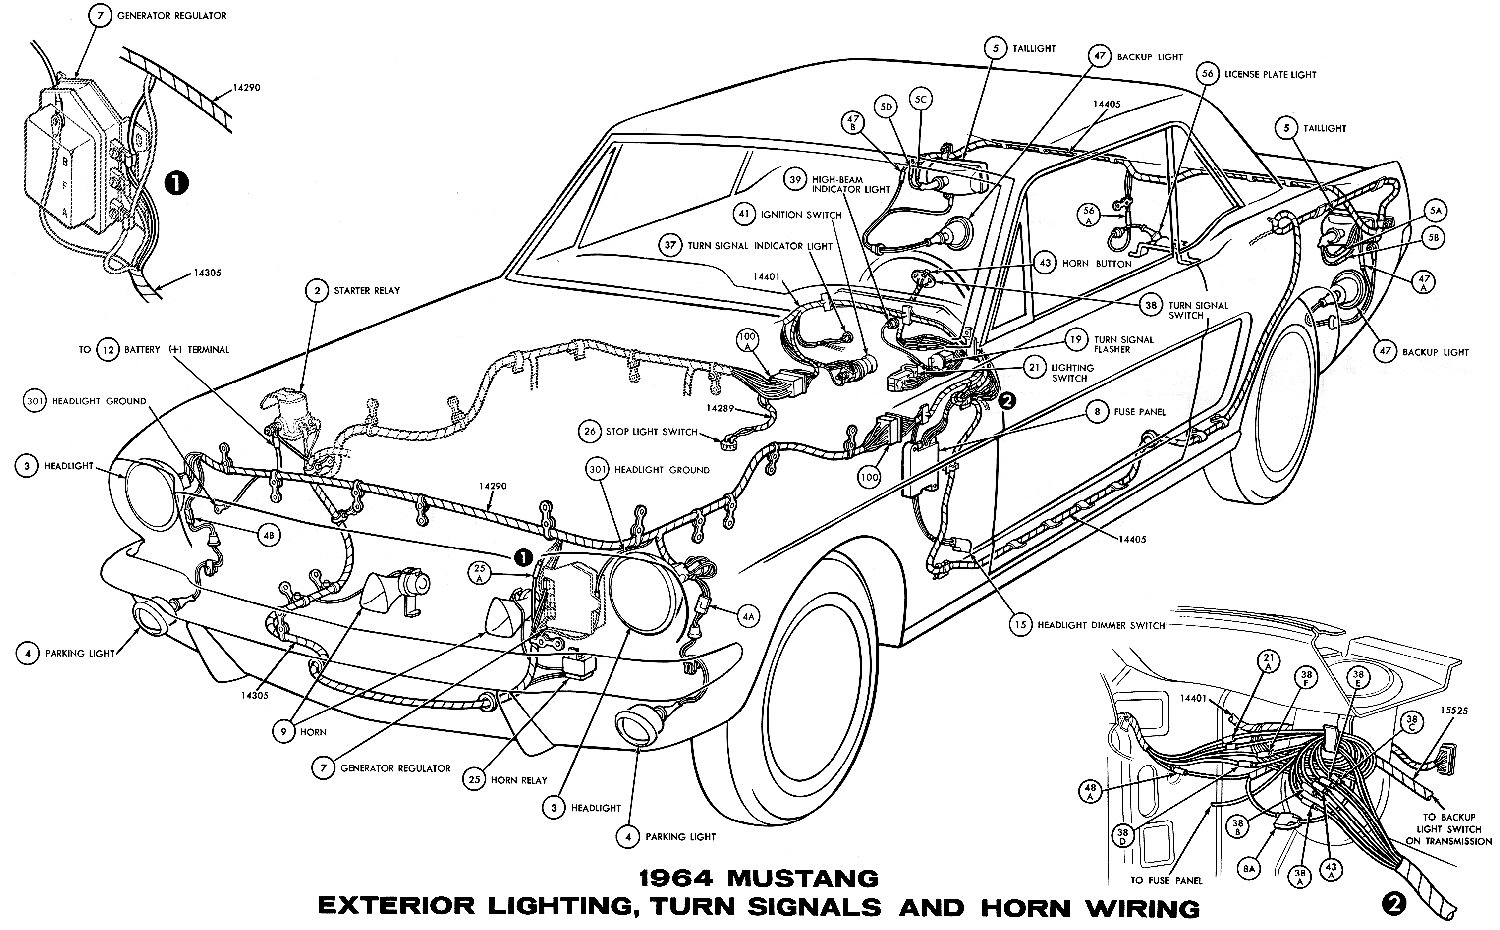 1964 mustang wiring diagram for headlights schematics wiring rh parntesis  co Ford F 650 Gas Engine